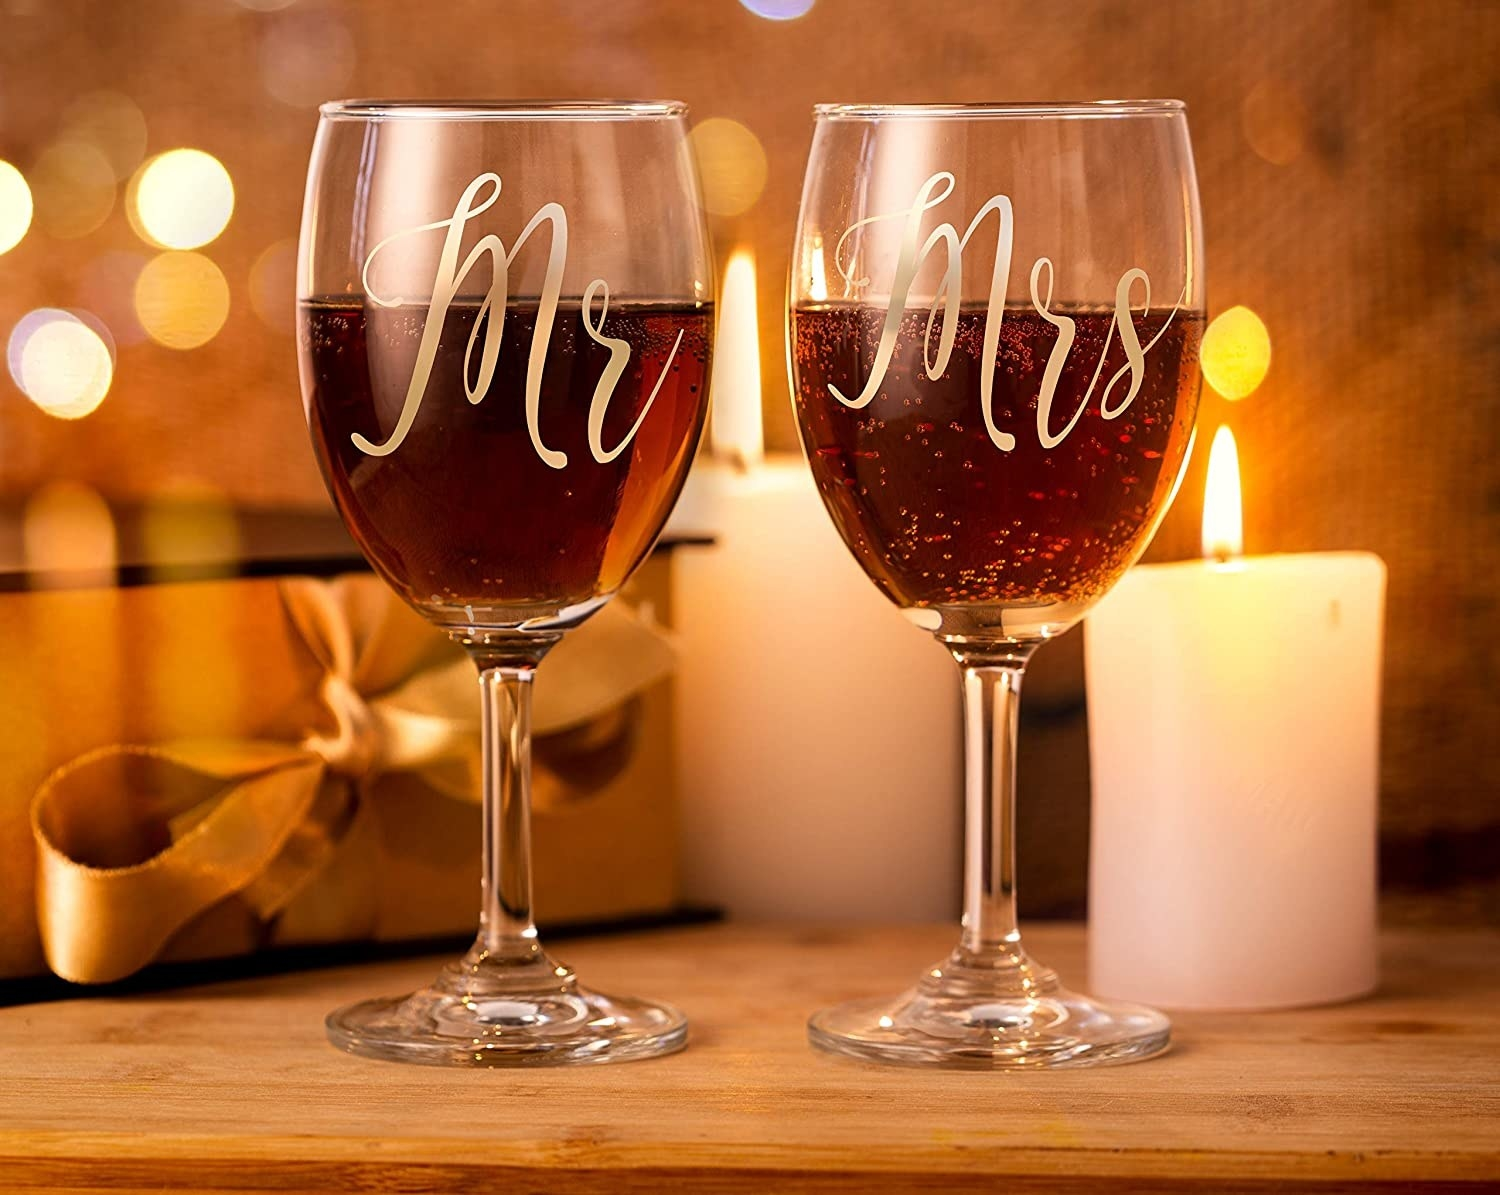 Two wine glasses with Mr and Mrs engraved on them